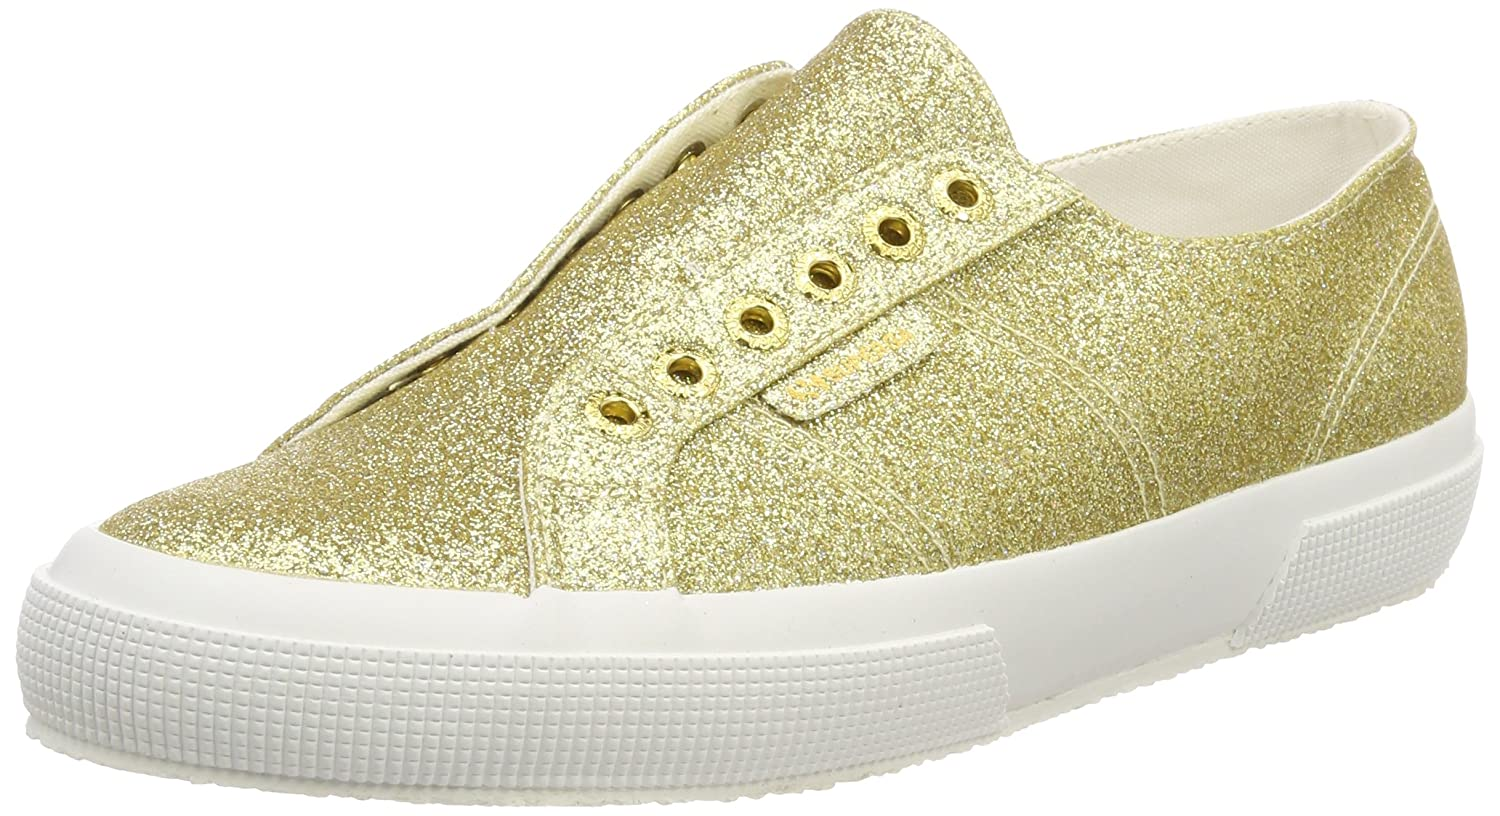 Superga 2750 Microglitterw Sneaker Donna Oro Orange Gold 174 38 EU